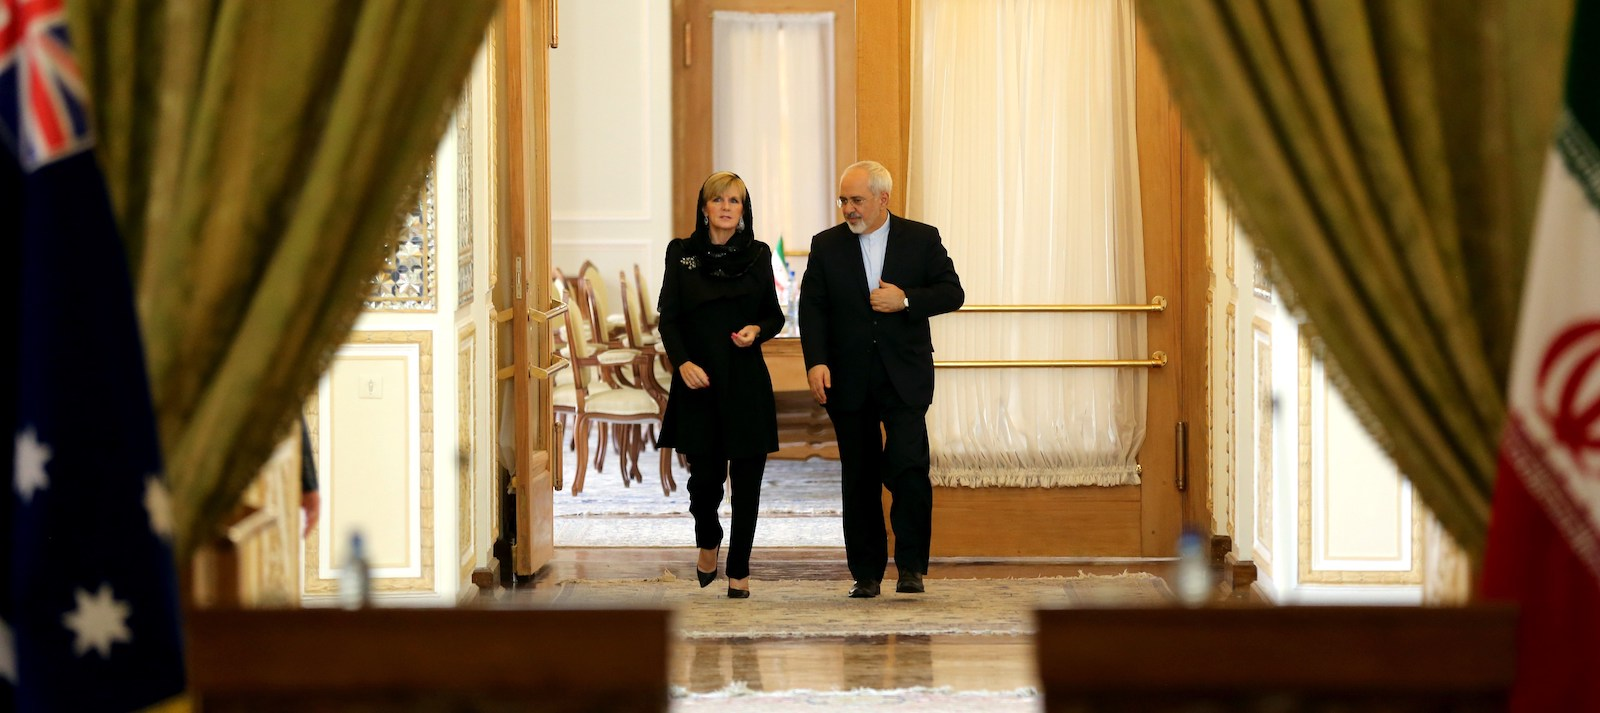 Australian Foreign Minister Julie Bishop and Iranian Foreign Minister Mohammad Javad Zarif in Tehran in 2015 (Photo: Atta Kenare/Getty)